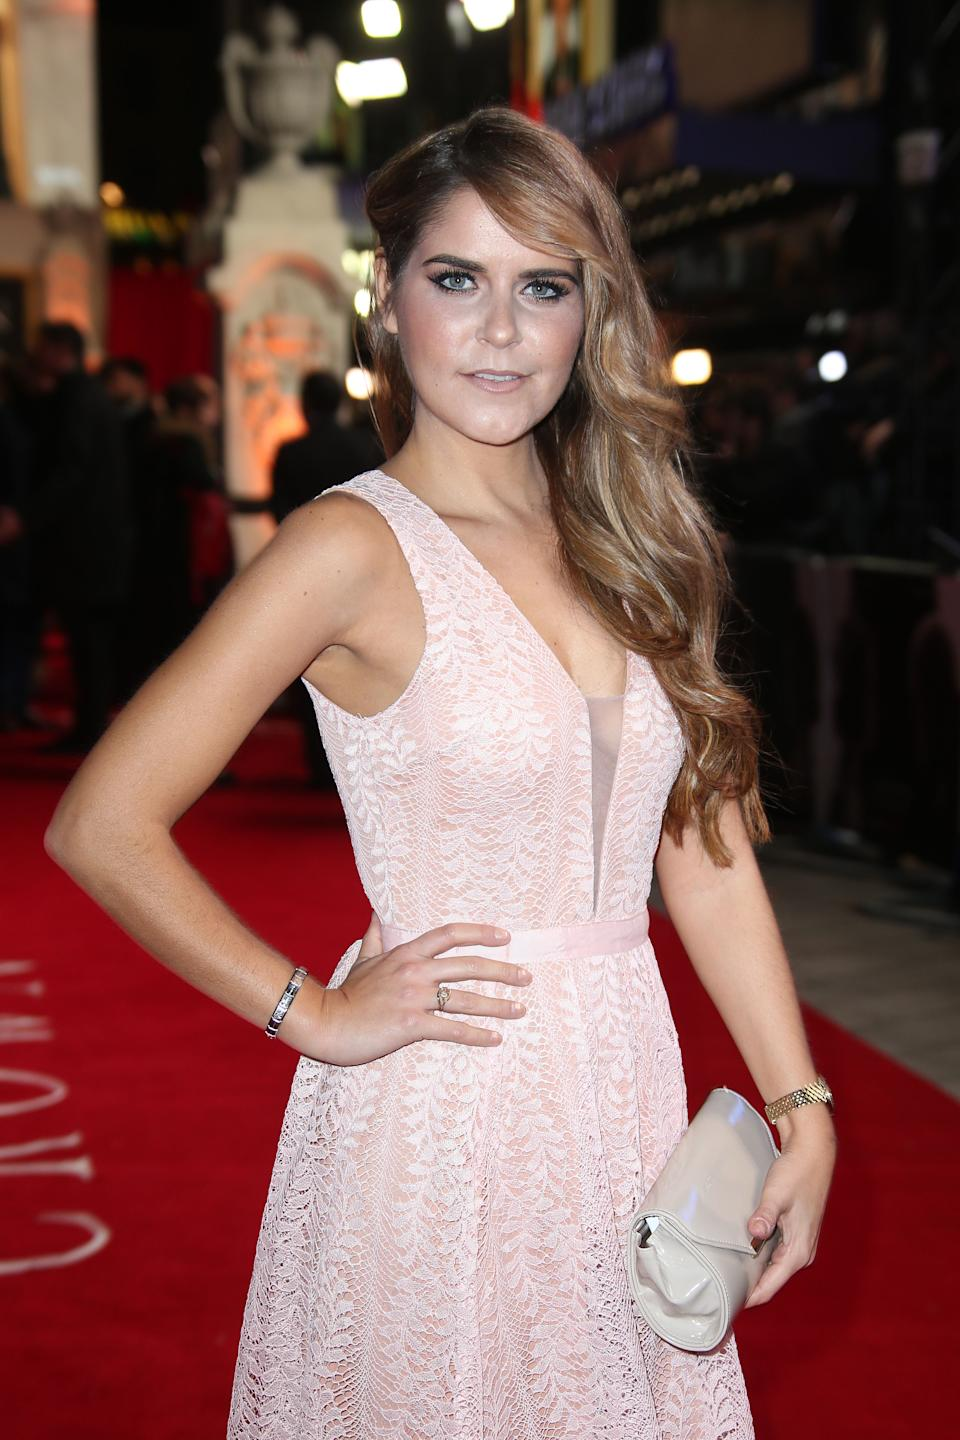 Gemma Oaten poses for photographers upon arrival at the premiere of the film 'The Crown' in London, Tuesday, Nov. 1, 2016. (Photo by Joel Ryan/Invision/AP)